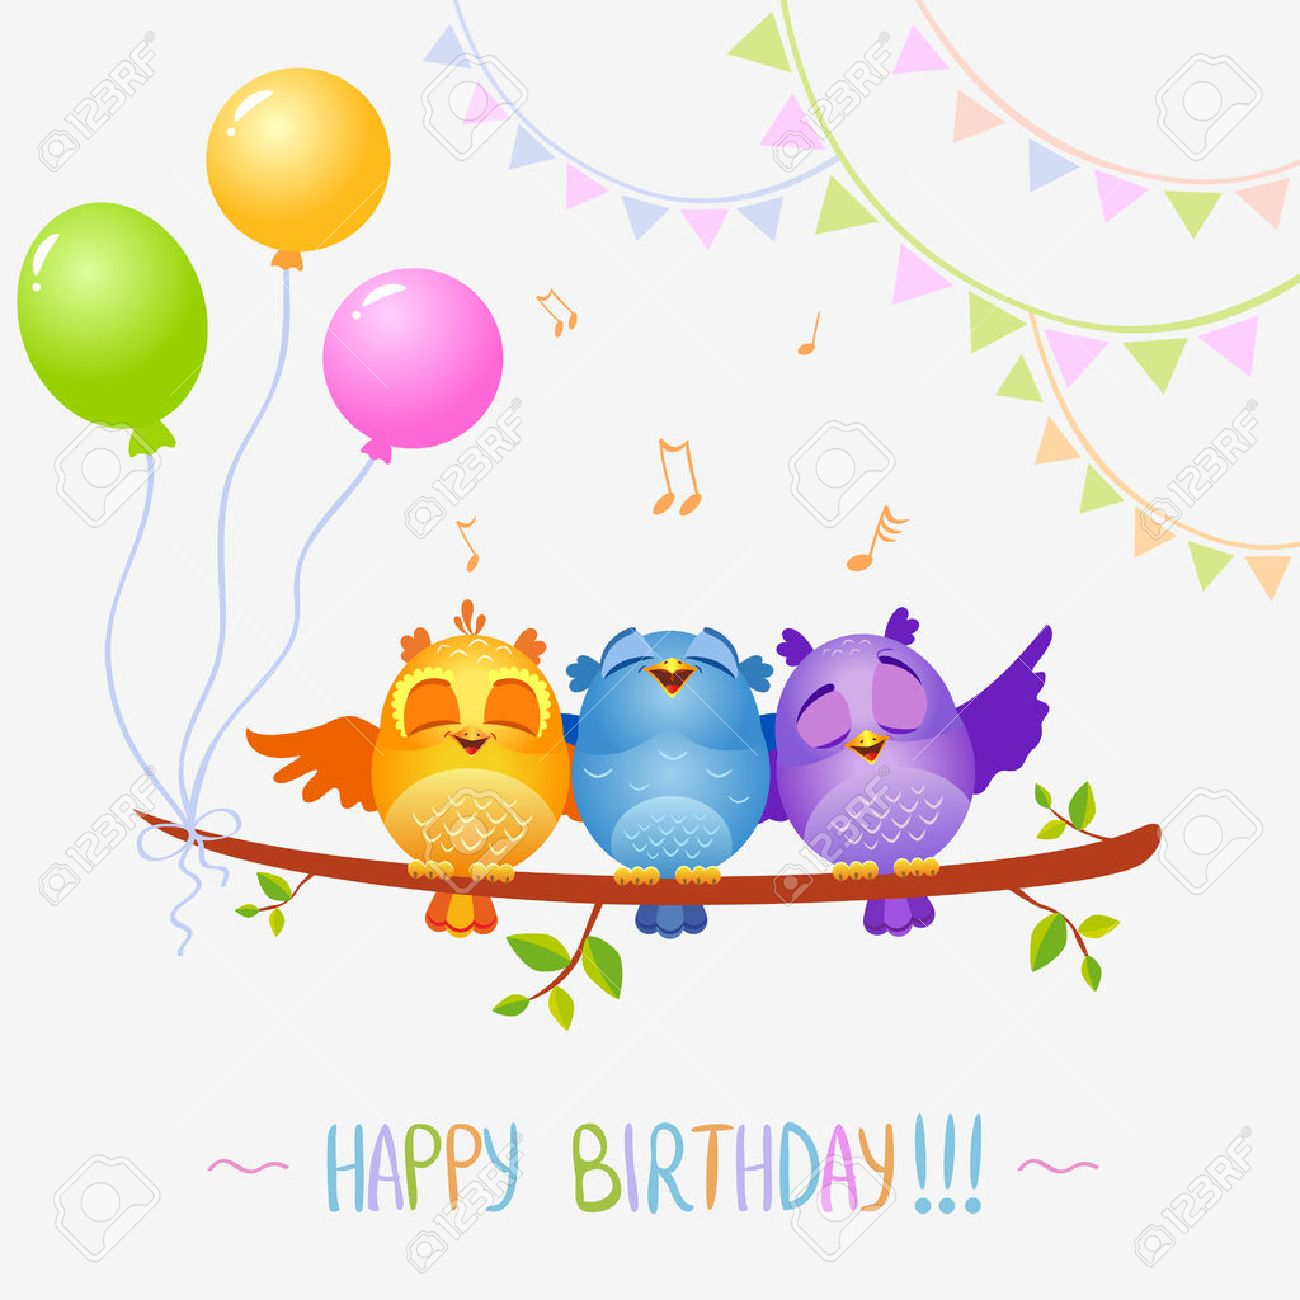 Feliz cumpleaños,  Yuuki!!! 22719235-illustration-of-funny-characters-birds-sing-happy-birthday